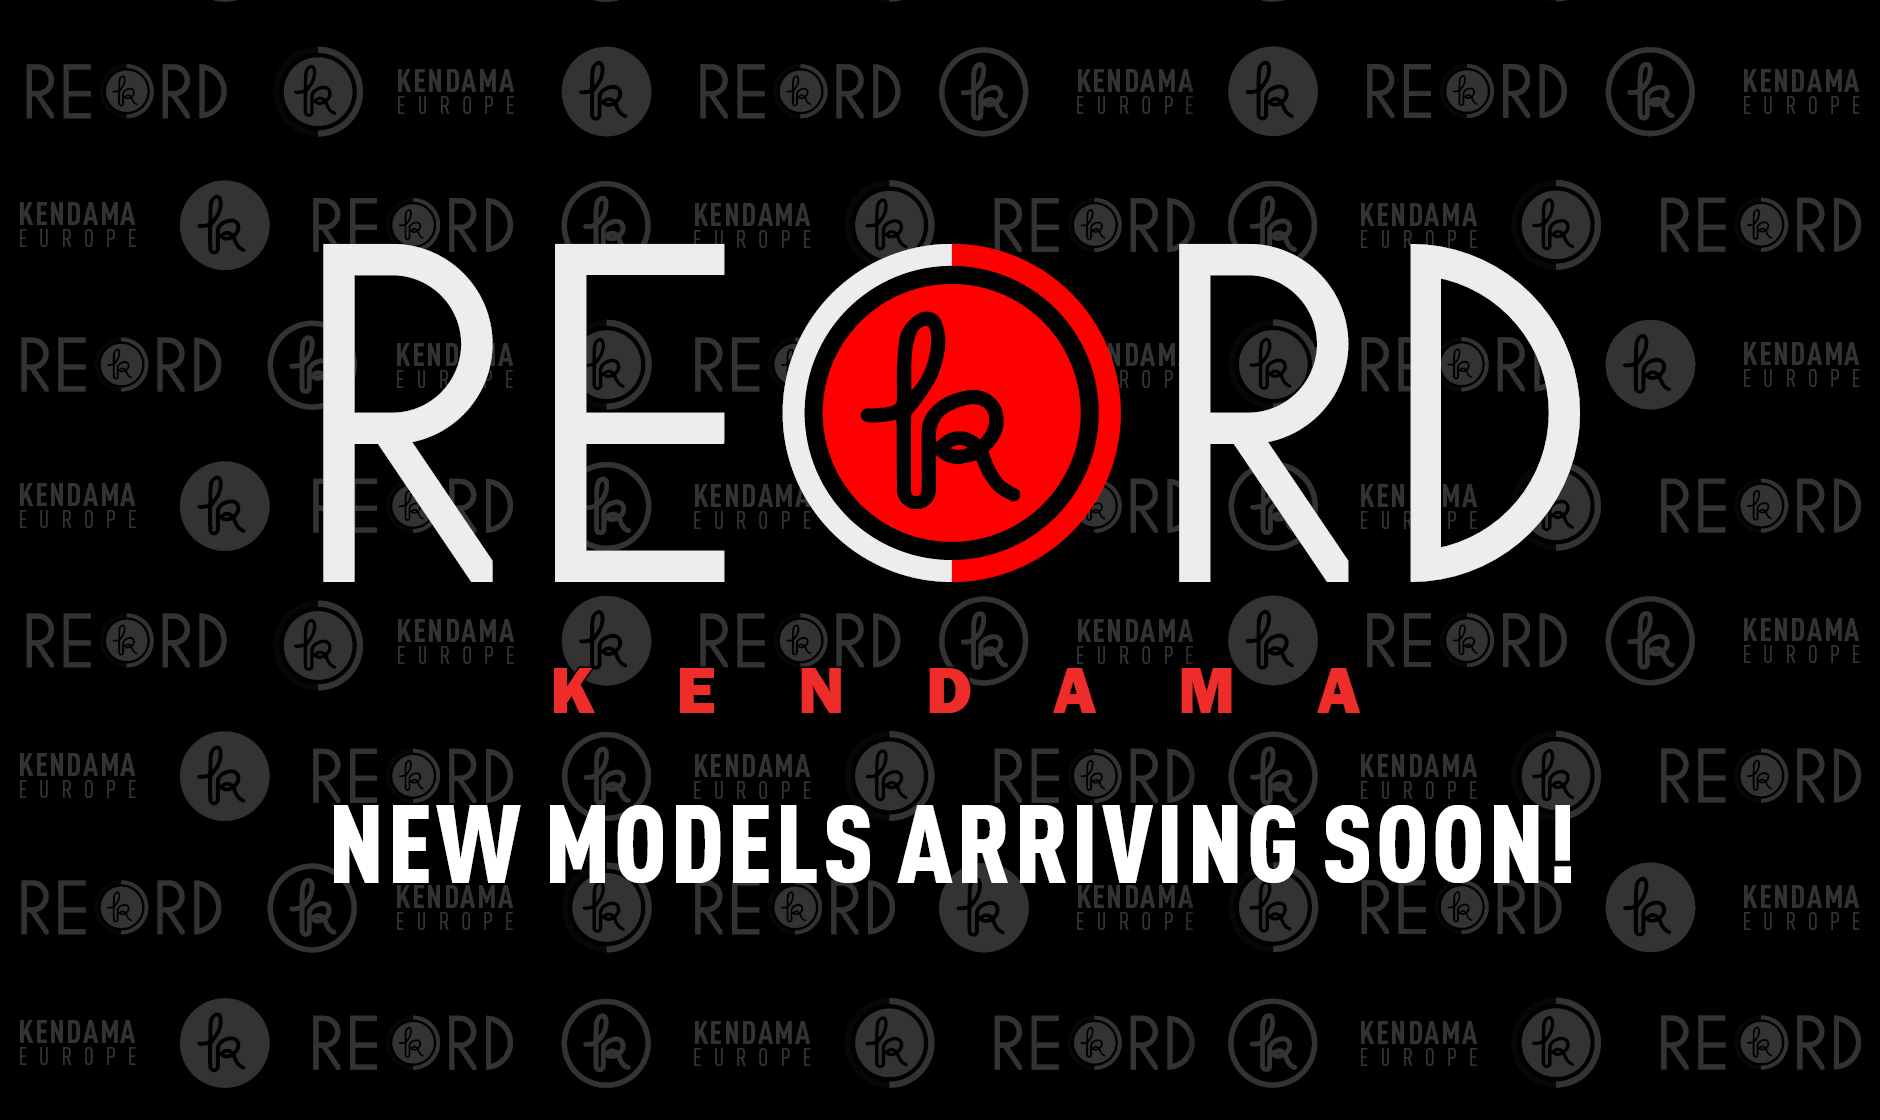 RECORD KENDAMA - New models arriving soon